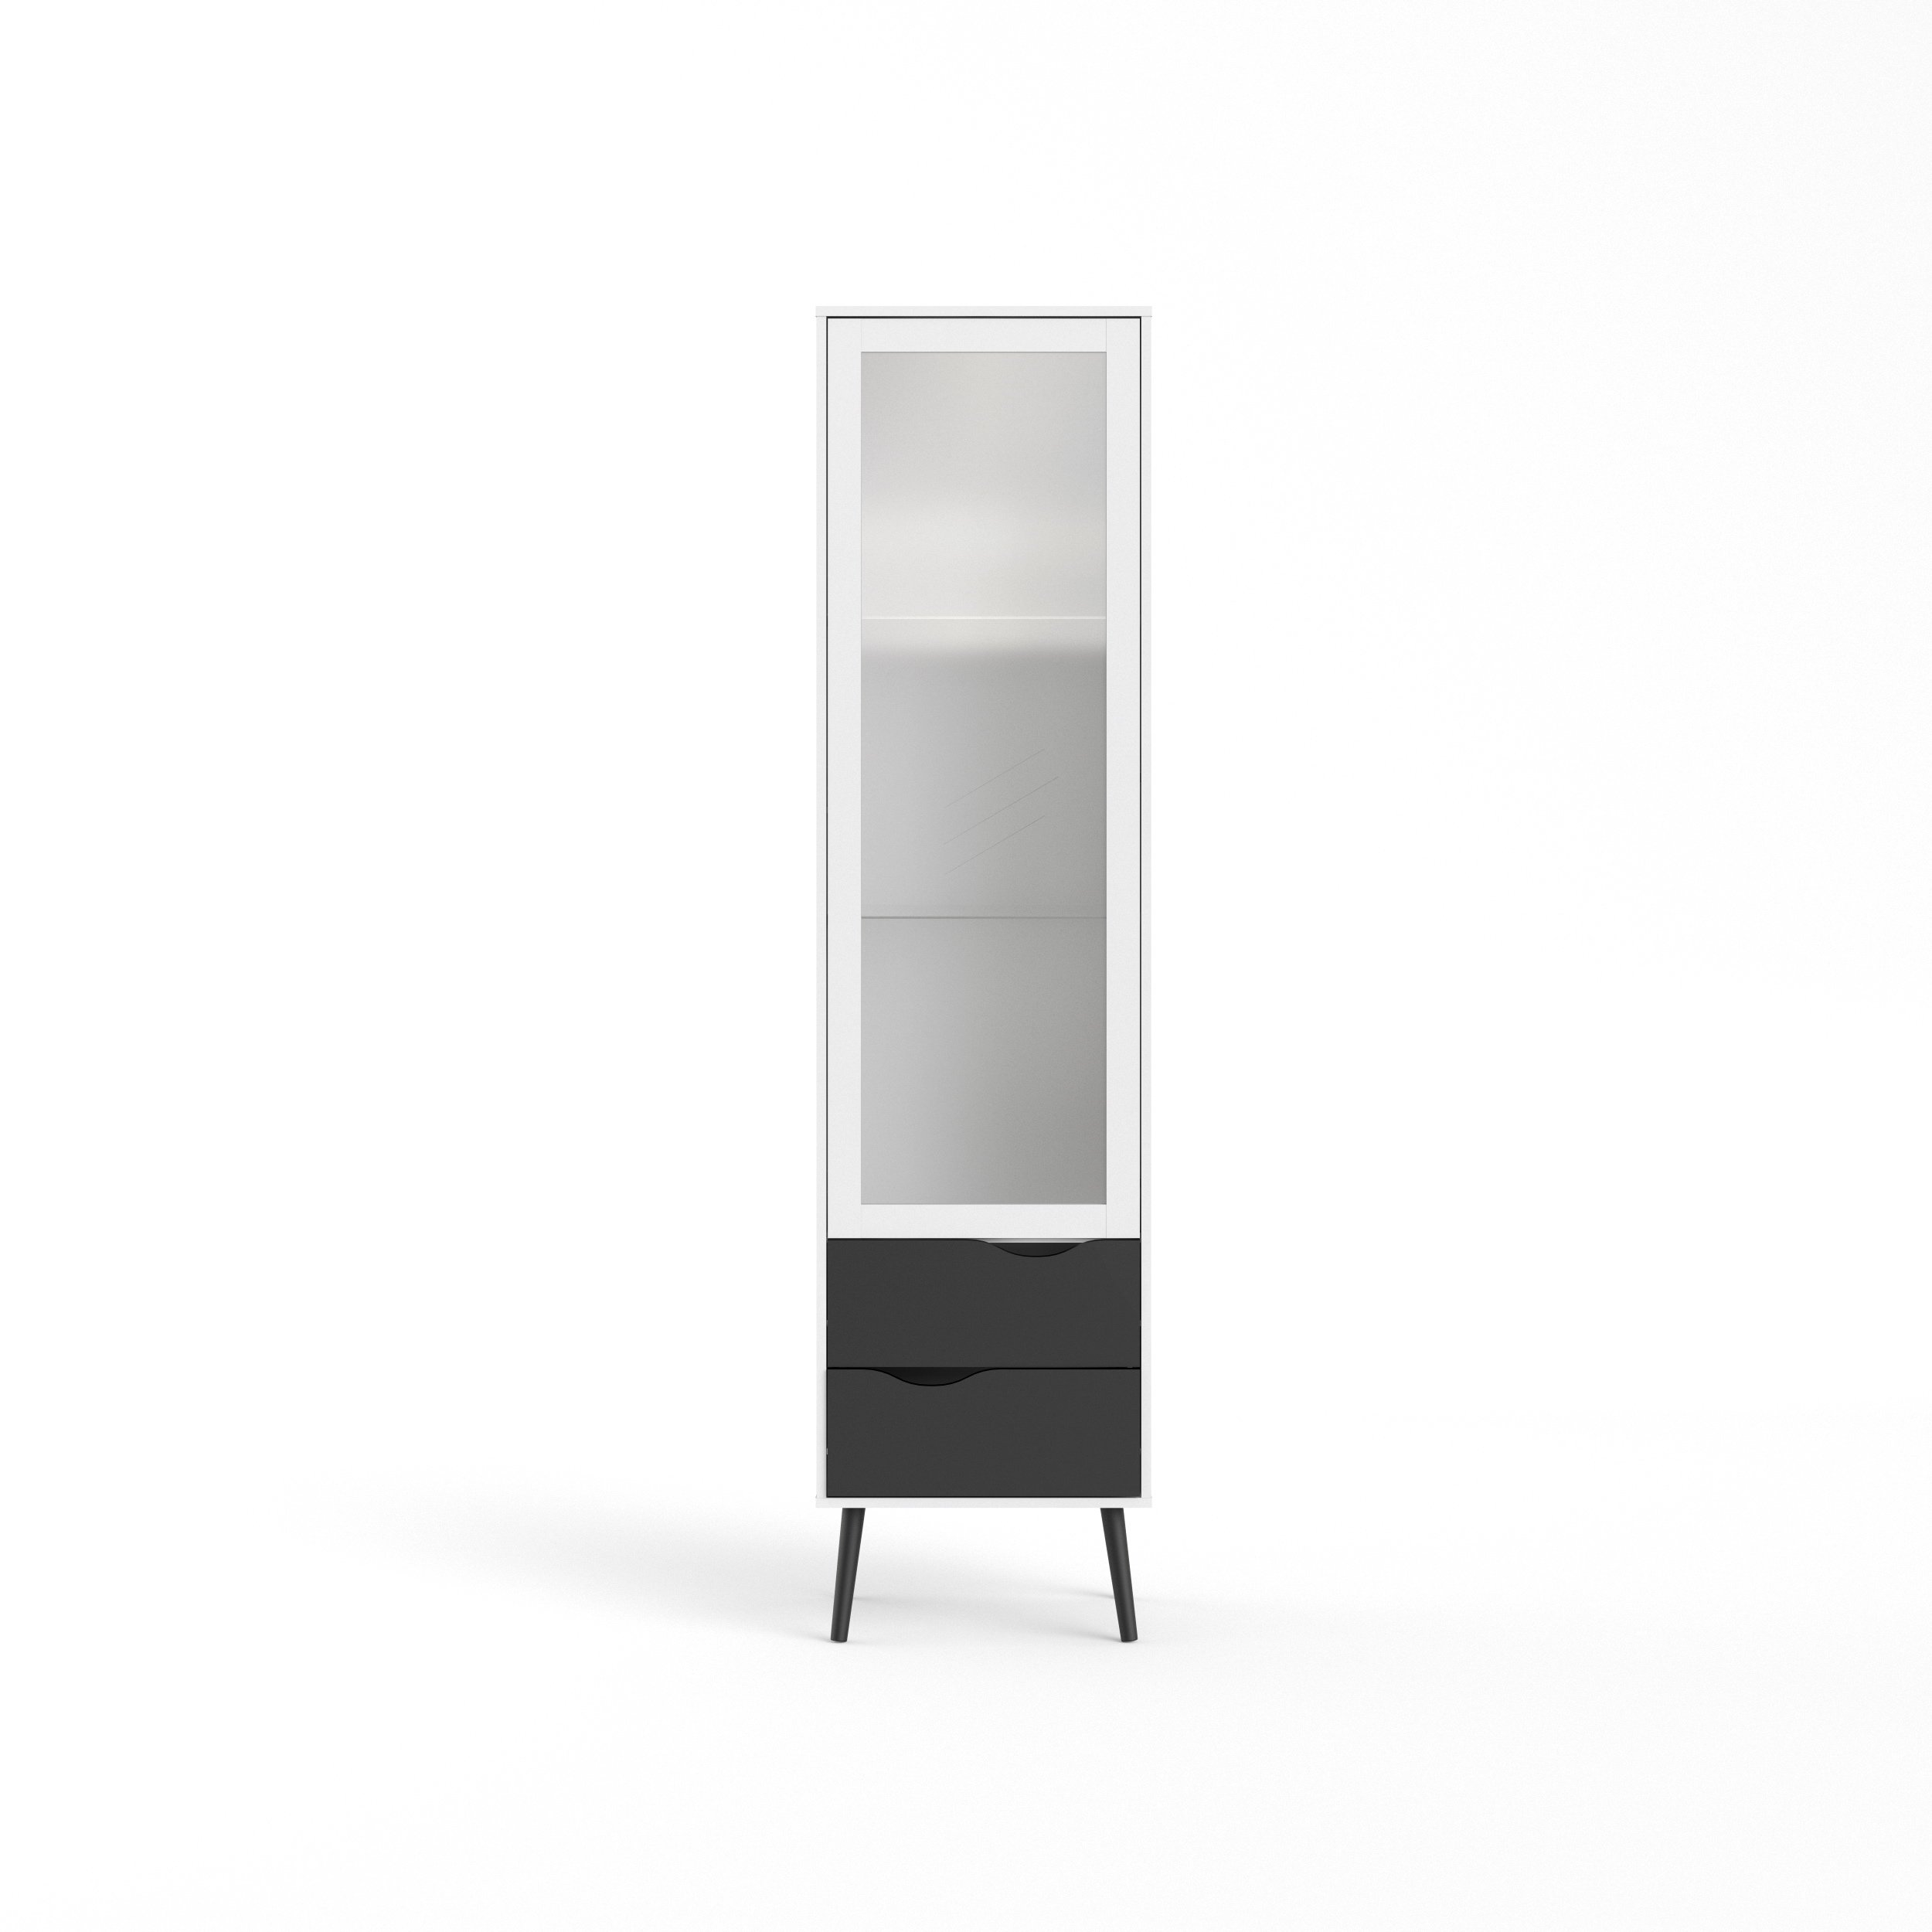 Tvilum 7546149gm Diana 2 Drawer and and 1 Door Glass China Cabinet, White/Black Matte by Tvilum (Image #1)